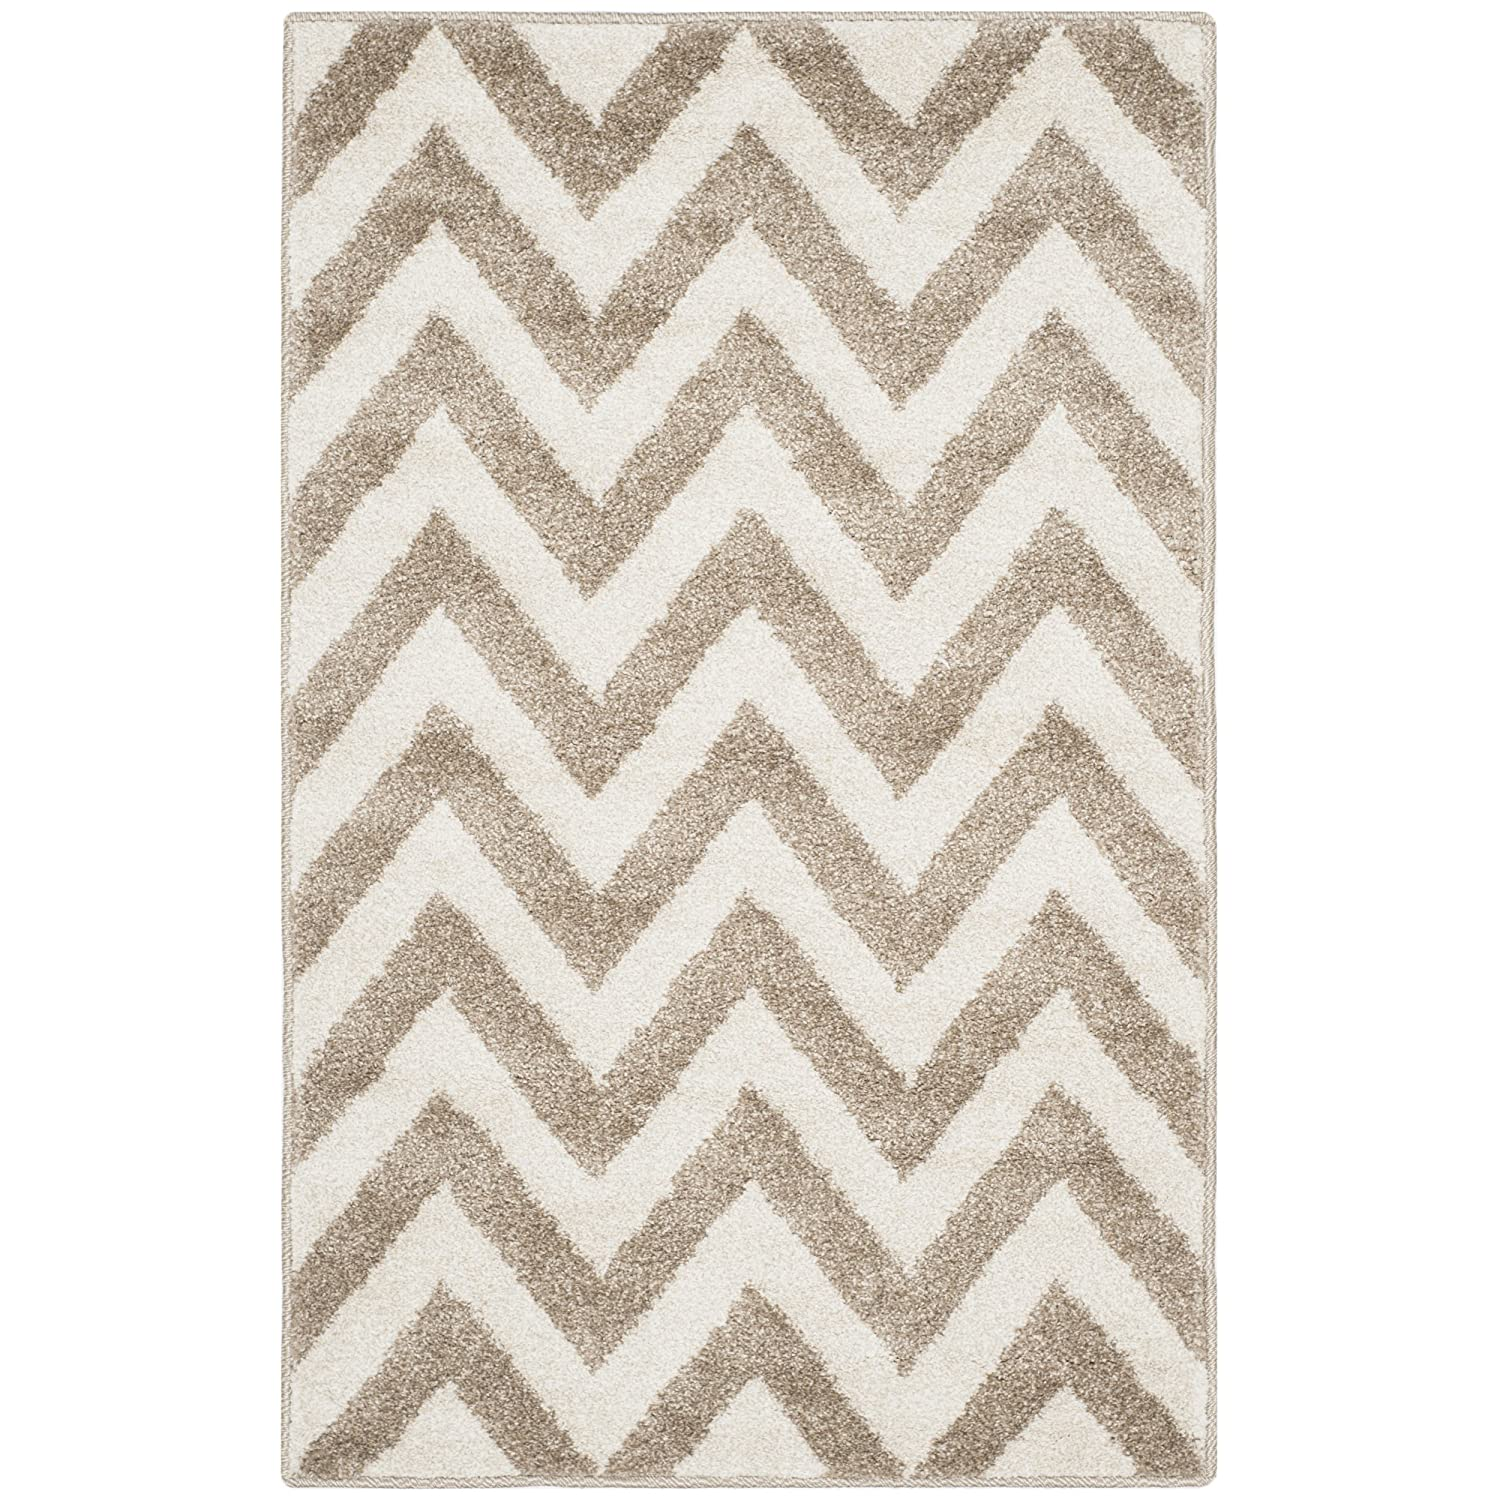 Safavieh Amherst Collection AMT419S Wheat and Beige Indoor// Outdoor Area Rug AMT419S-24 26 x 4